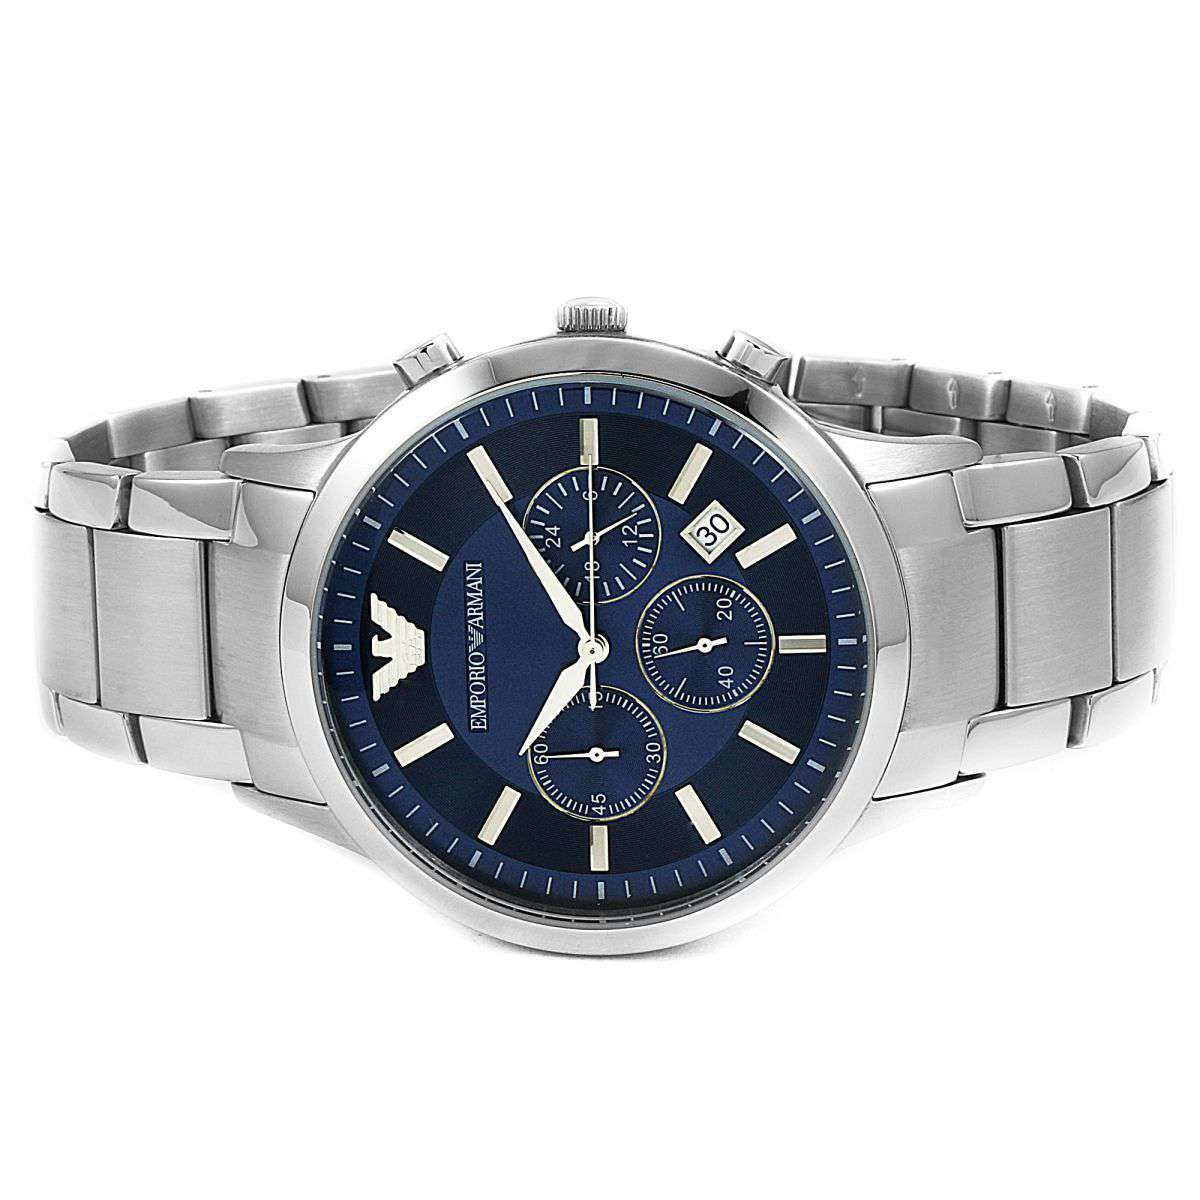 Emporio Armani Men's AR 2448 Chronograph Watch Steel Umisfashion Store